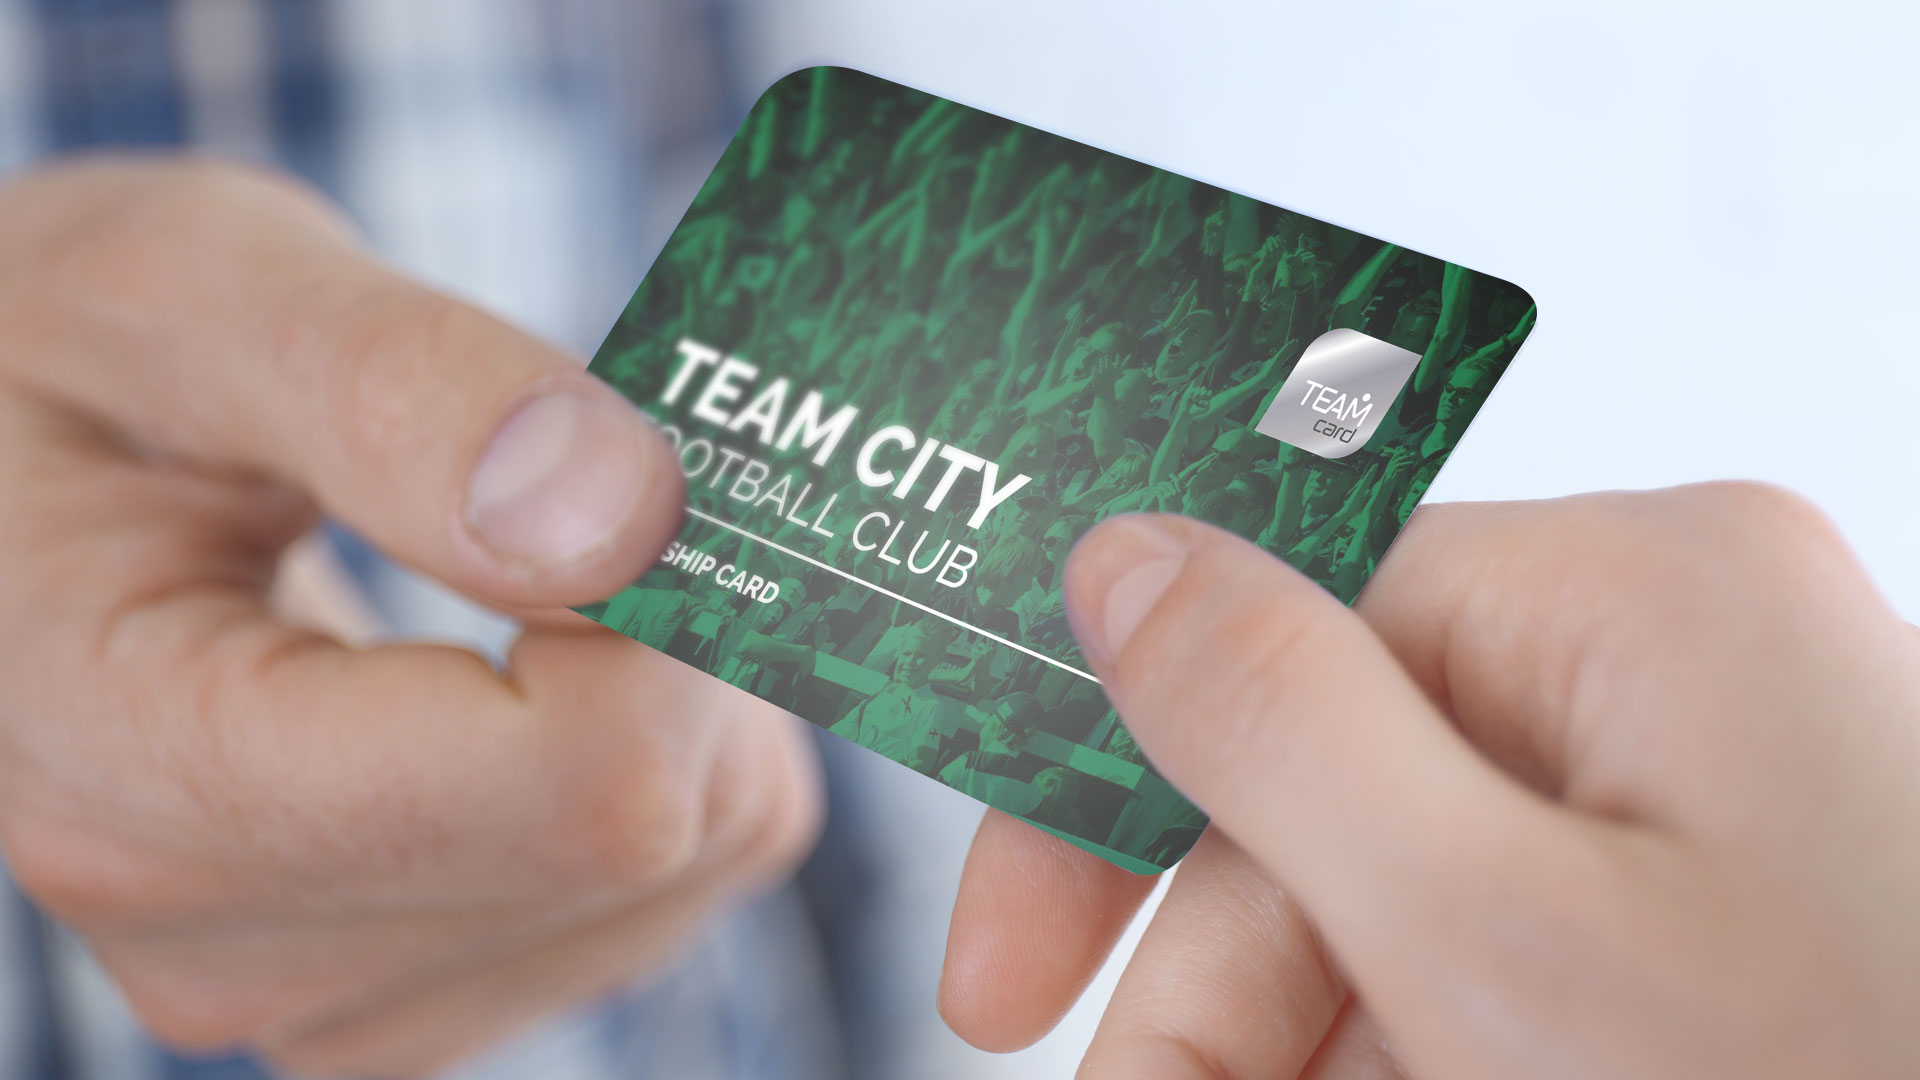 Handing over a TeamCard